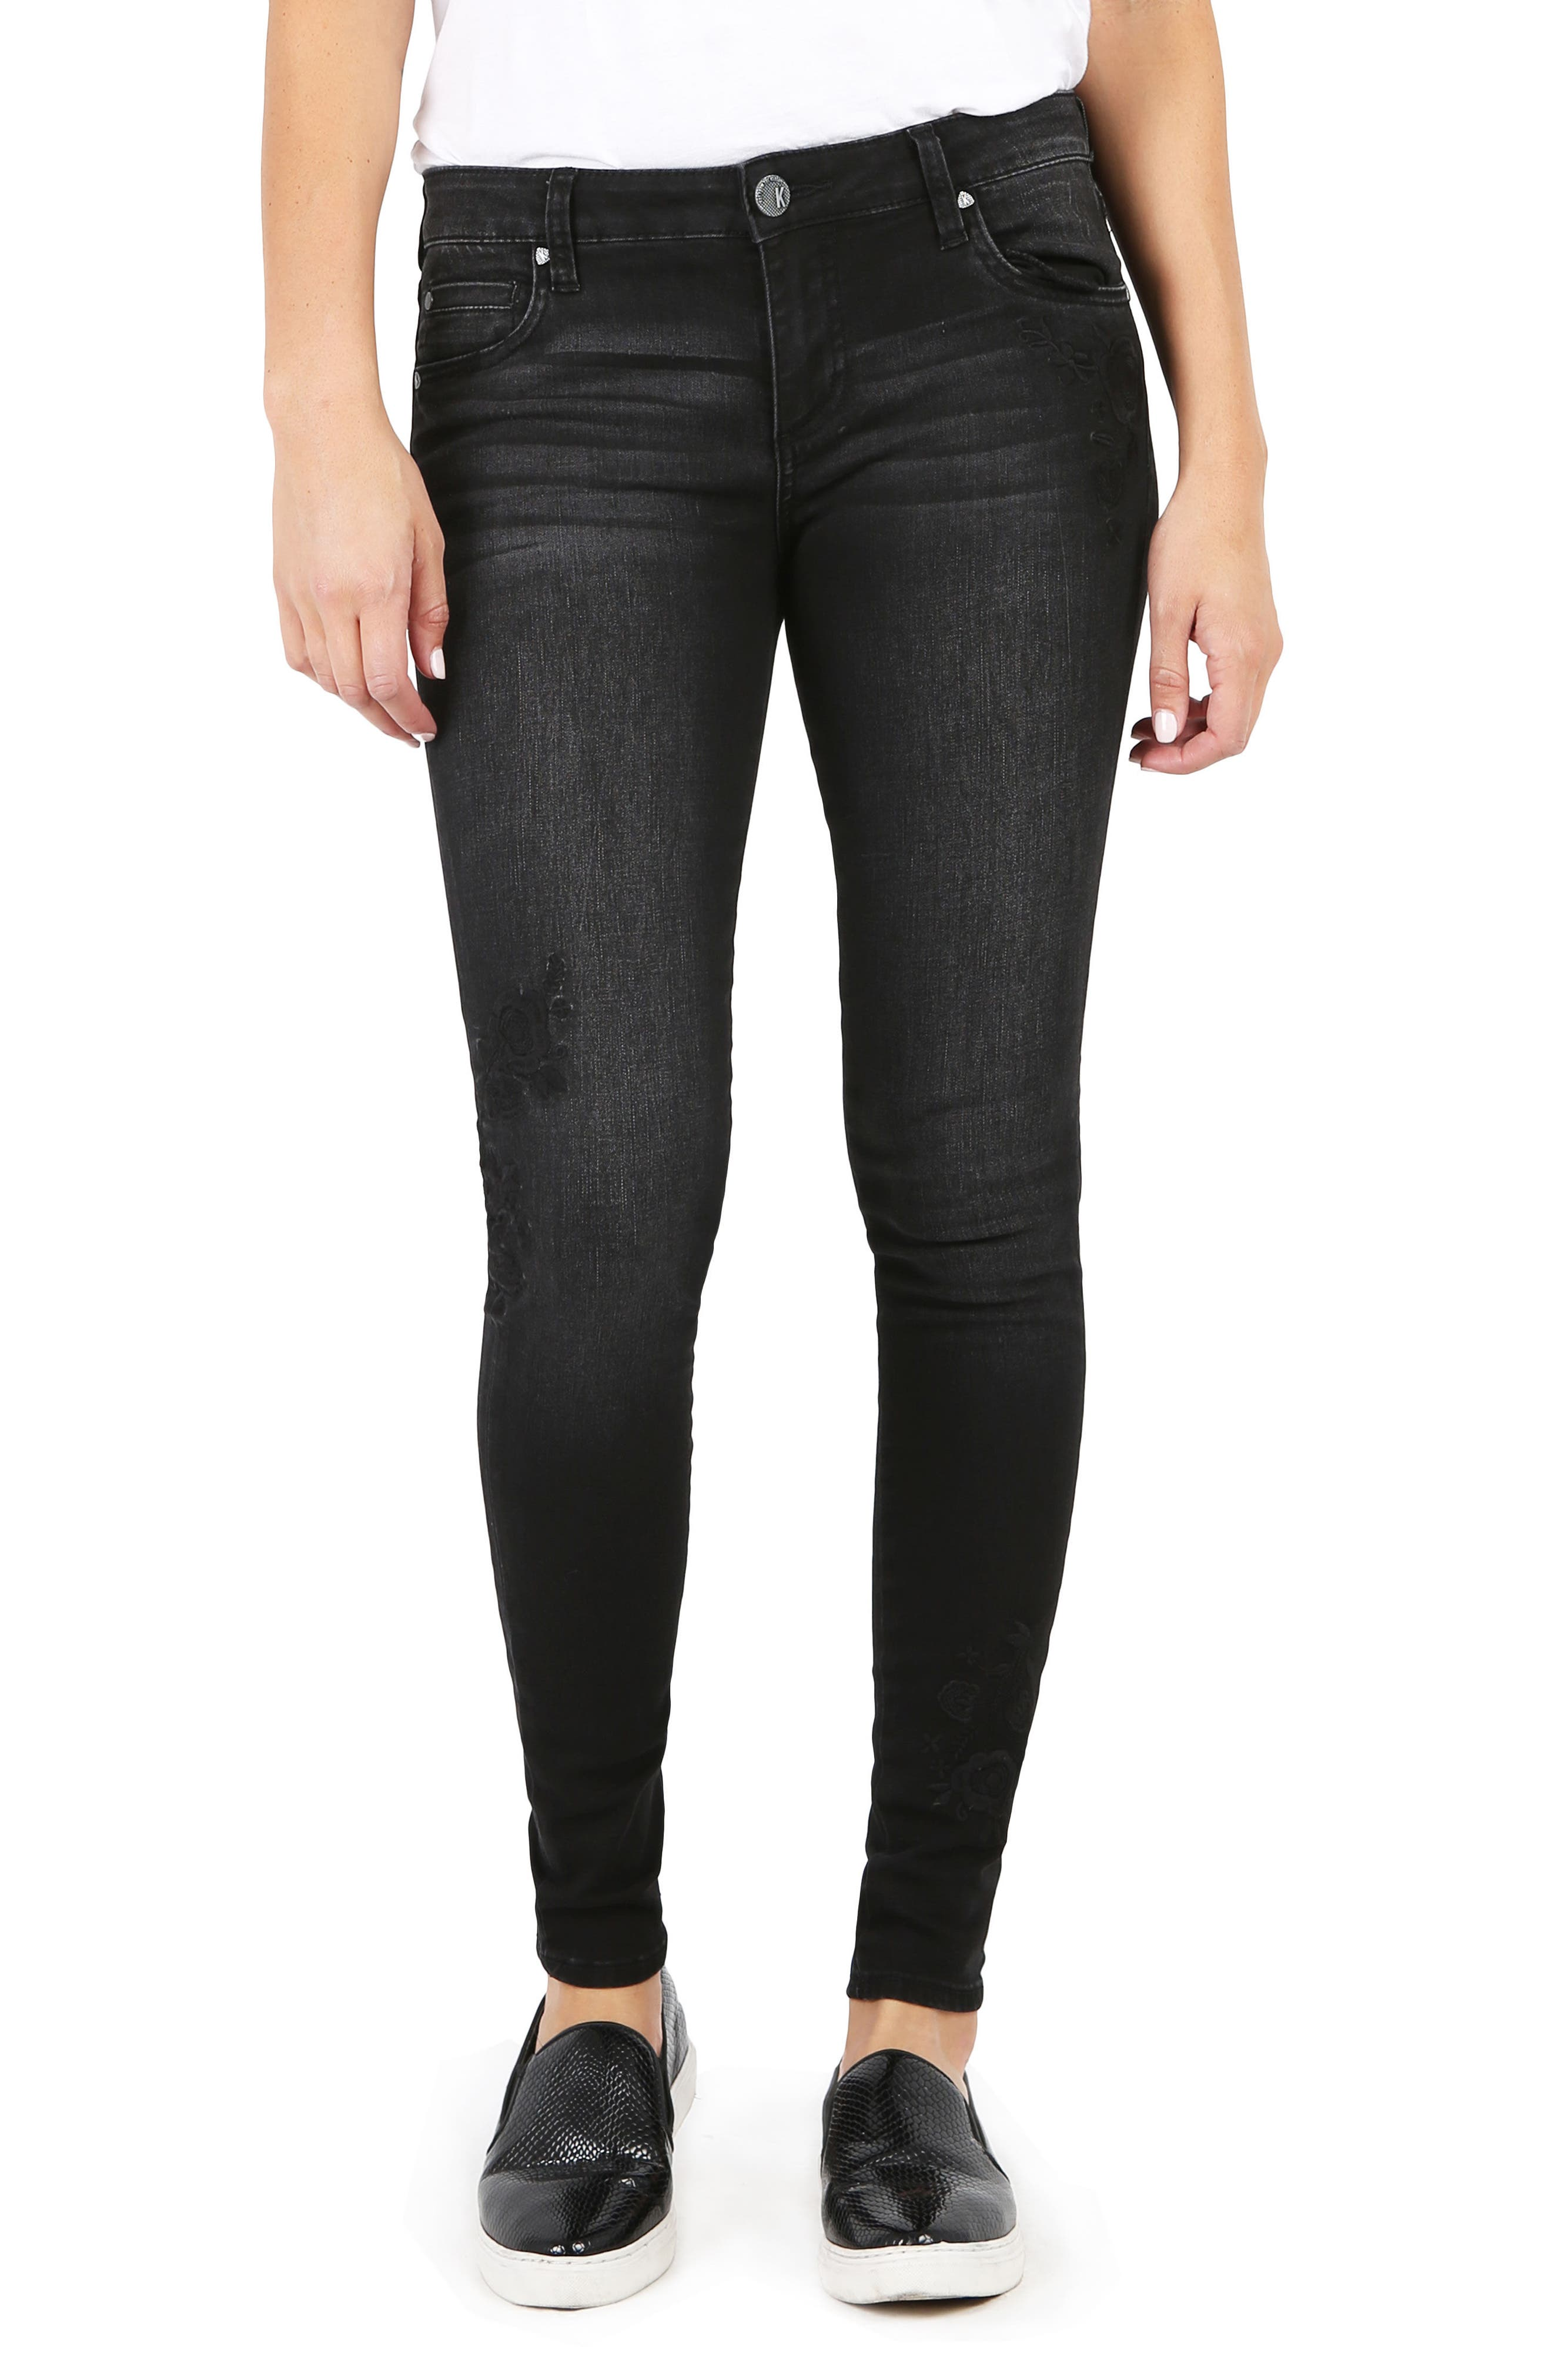 Alternate Image 1 Selected - KUT from The Kloth Mia Embroidered Skinny Jeans (Versed)